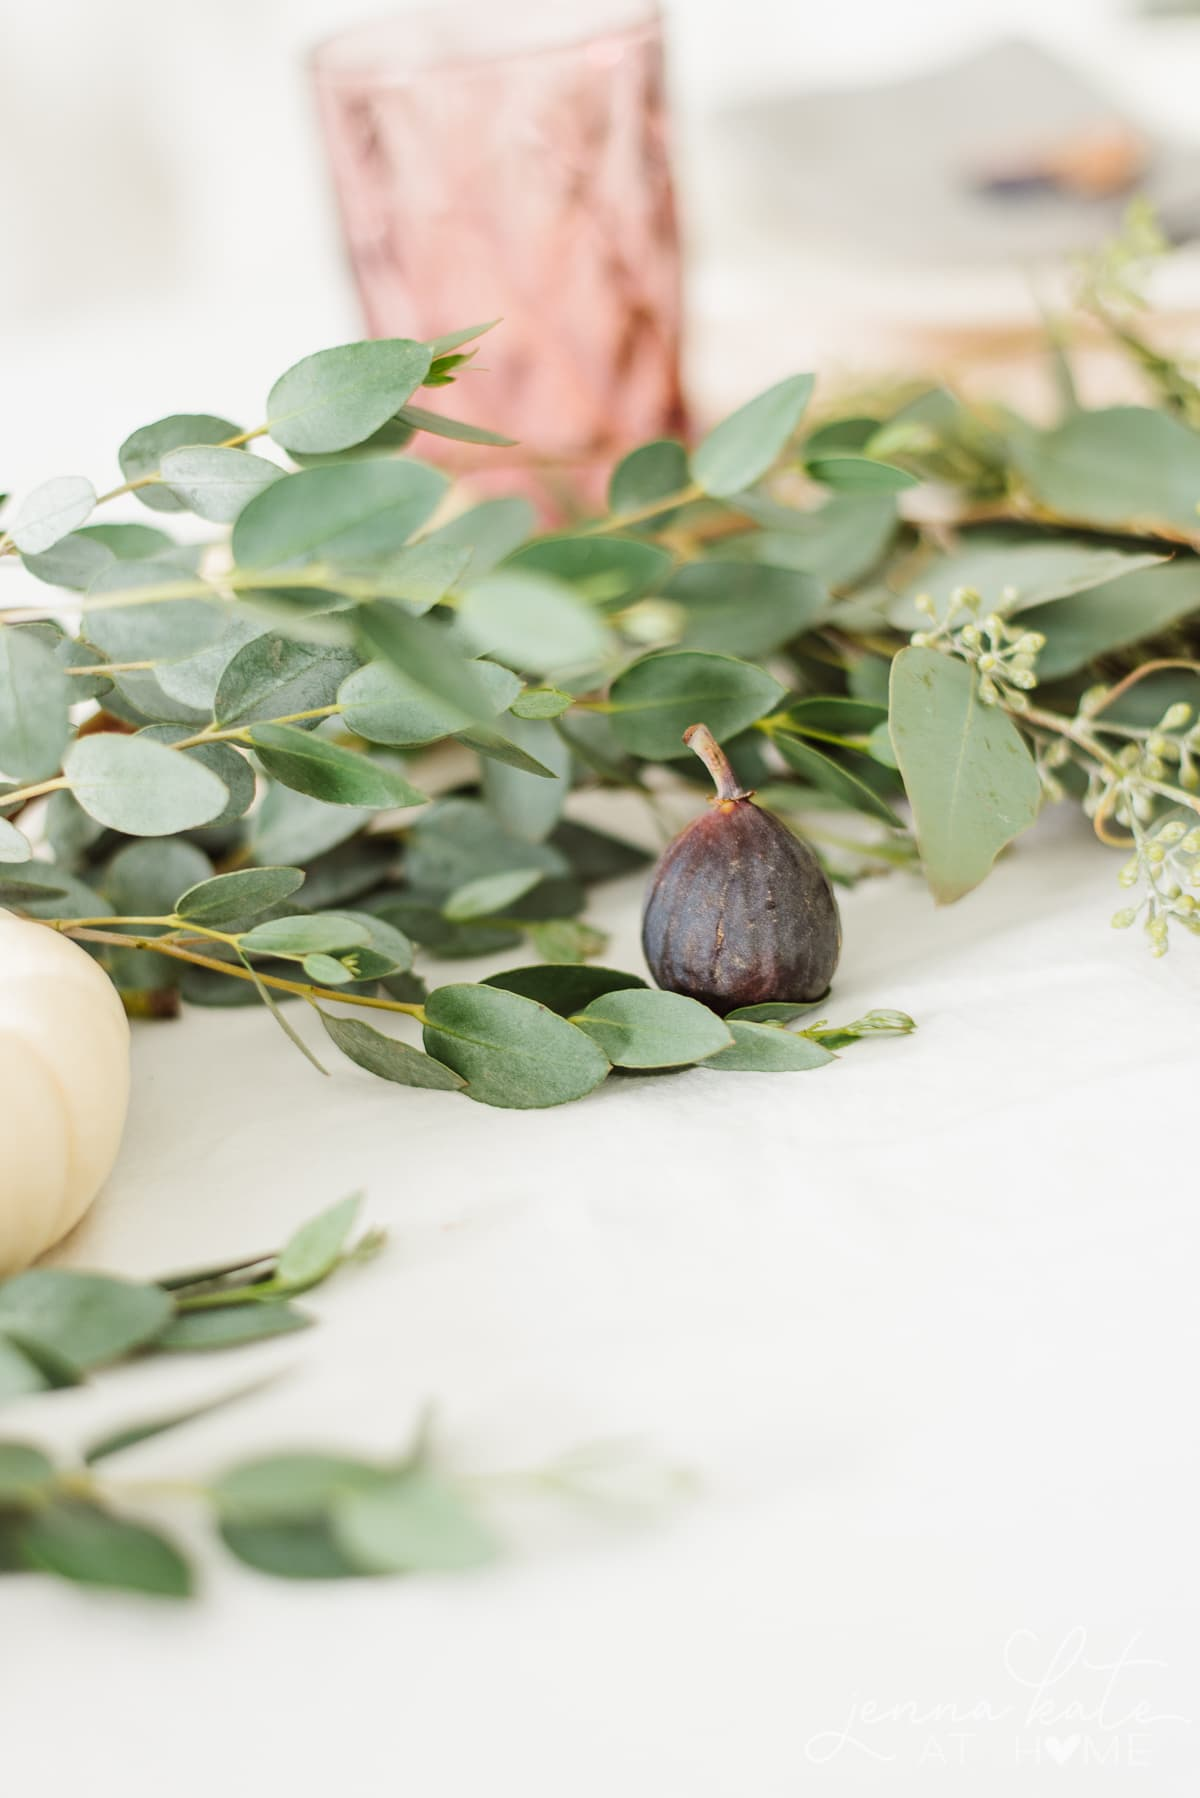 Figs as part of a Thanksgiving centerpiece